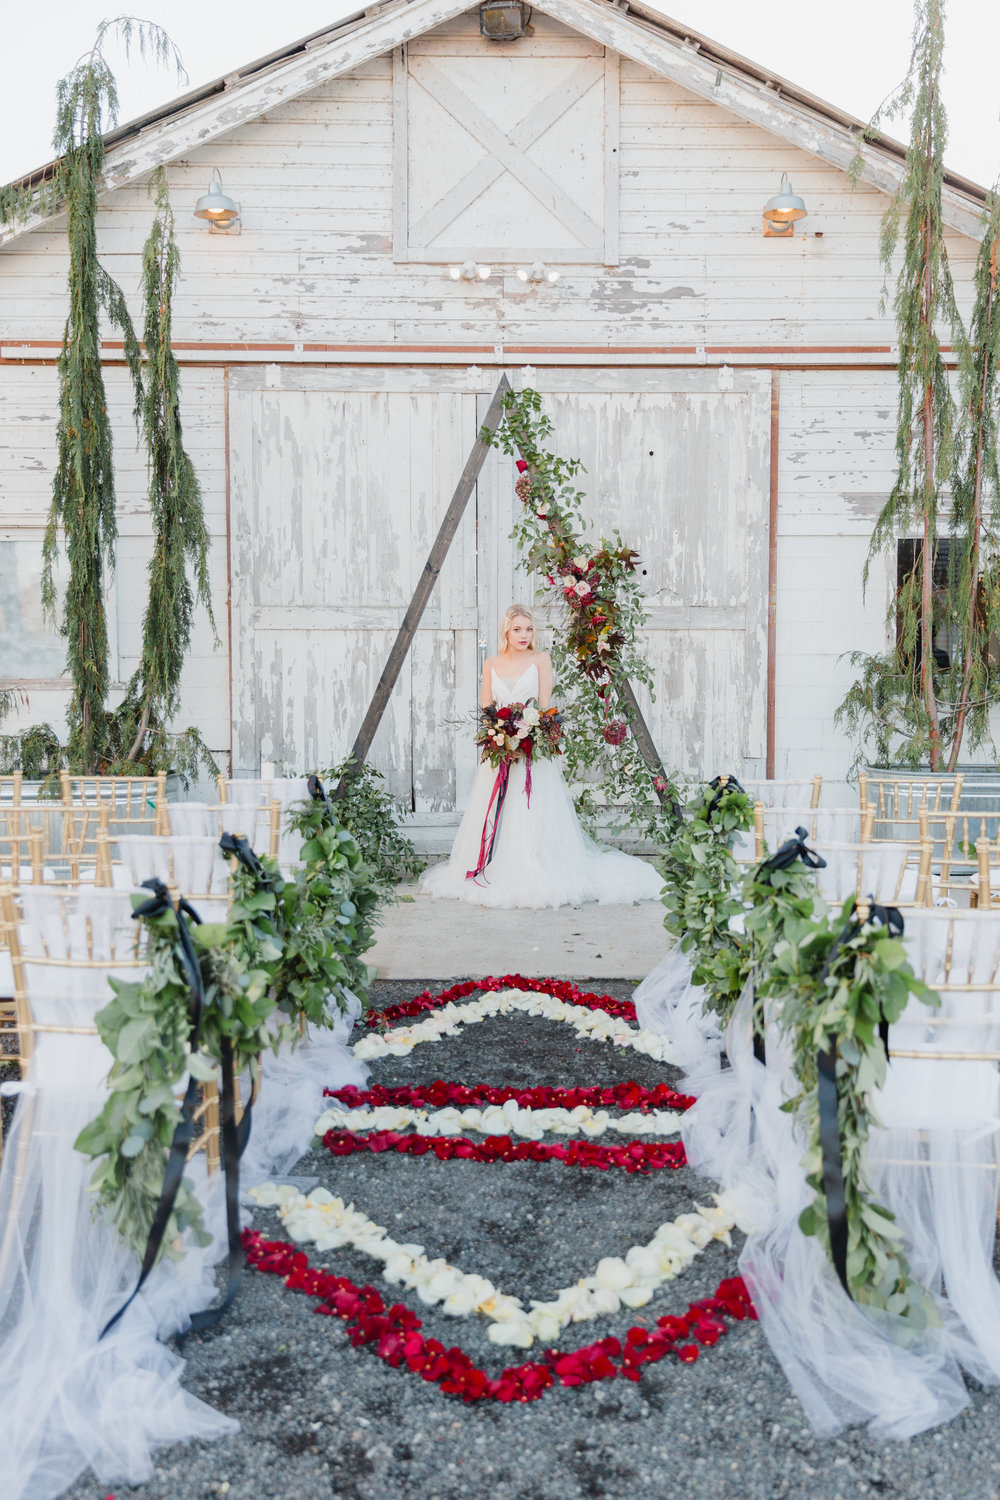 Modern geometric aisle decor with rose petals, garland, and triangle arch by From the Ground Up Floral.